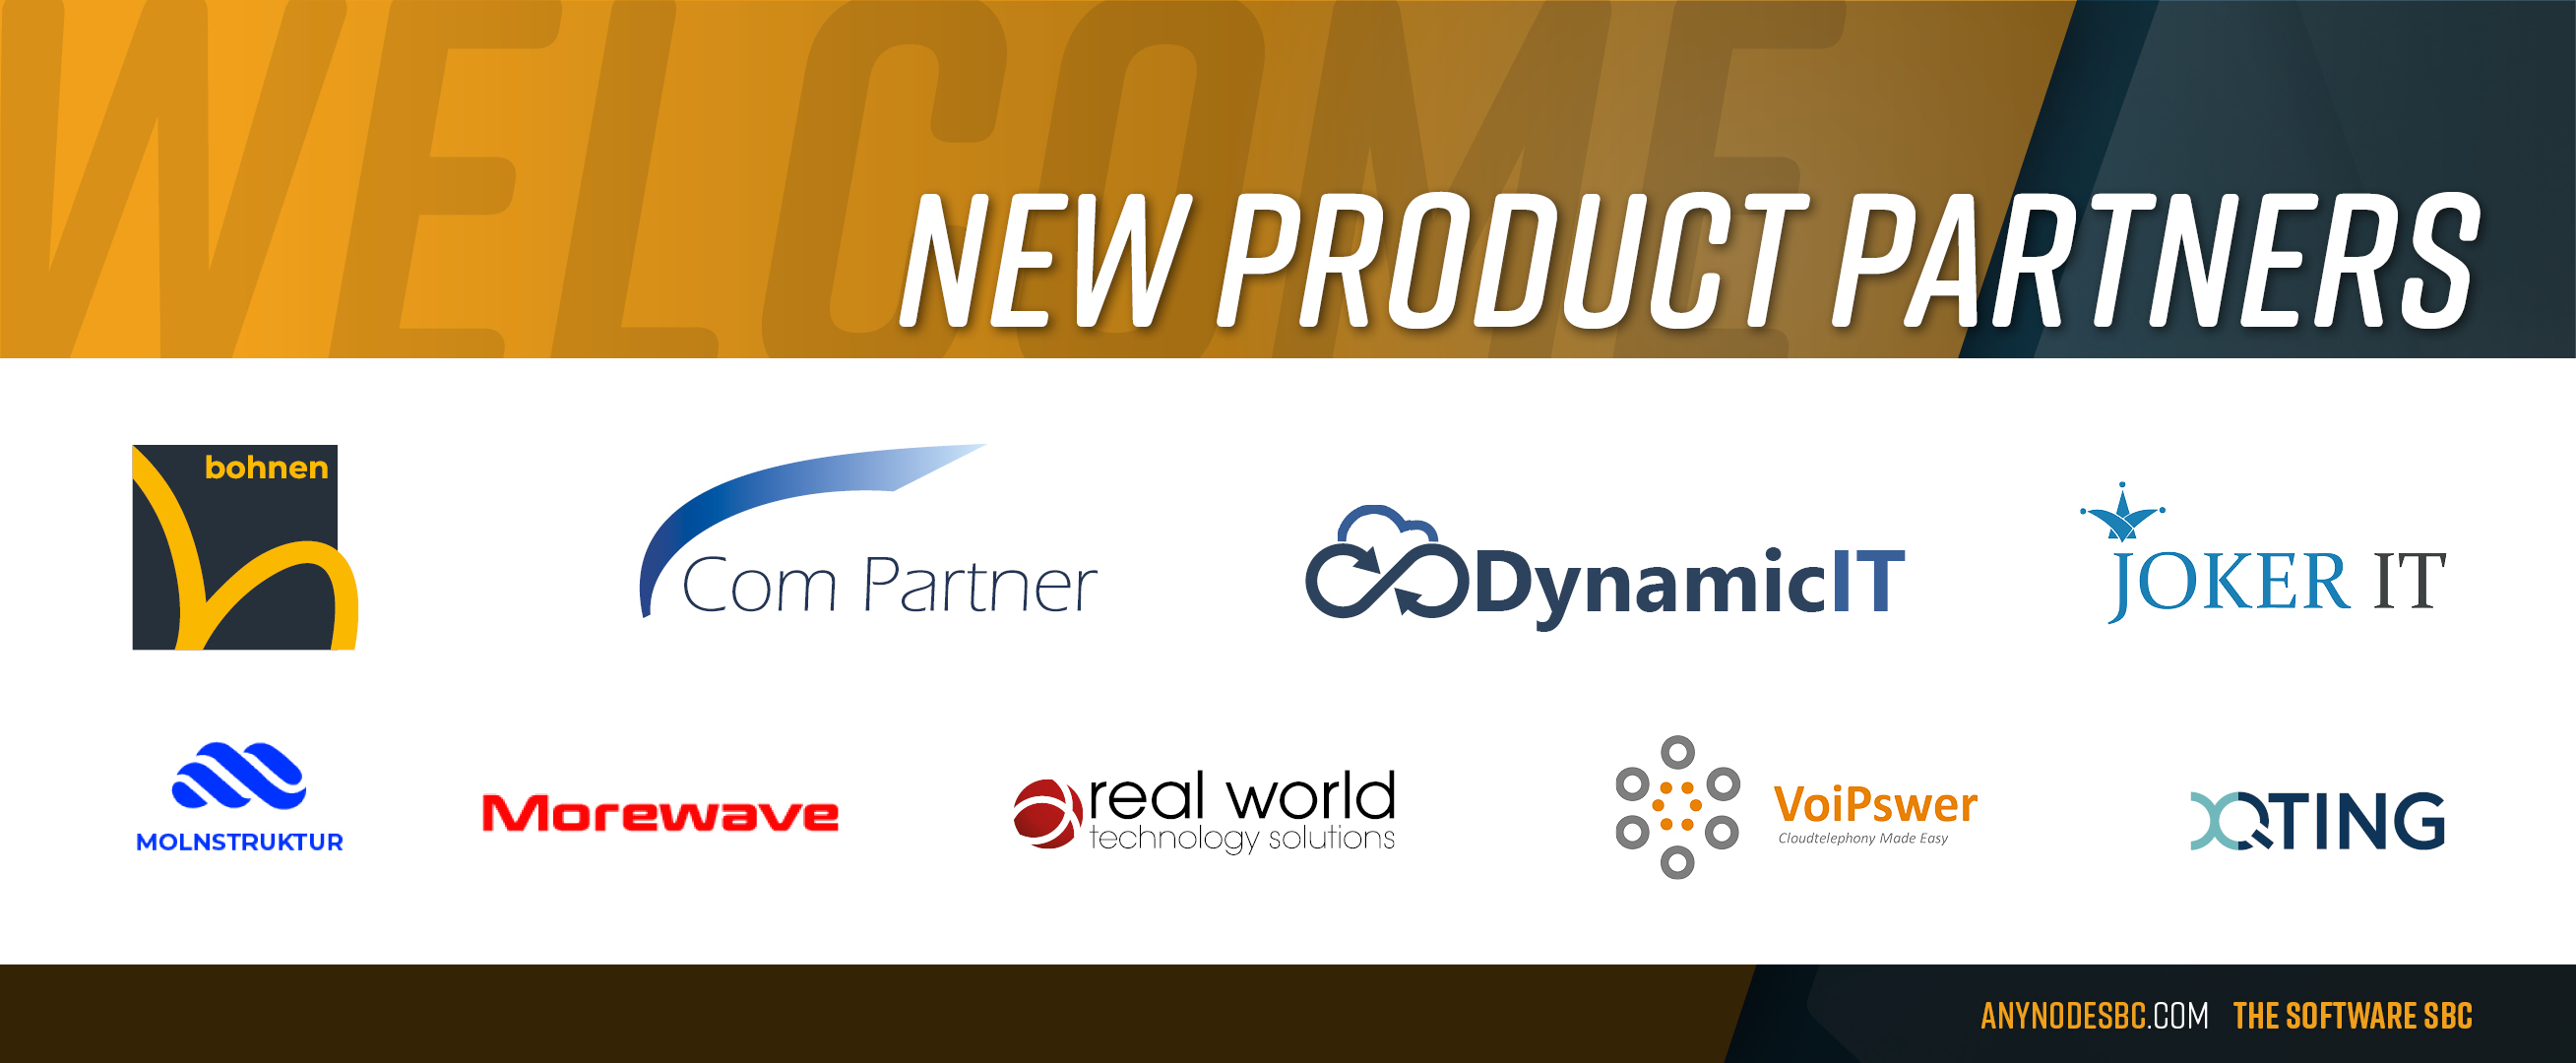 New anynode Product Partners in April 2020!